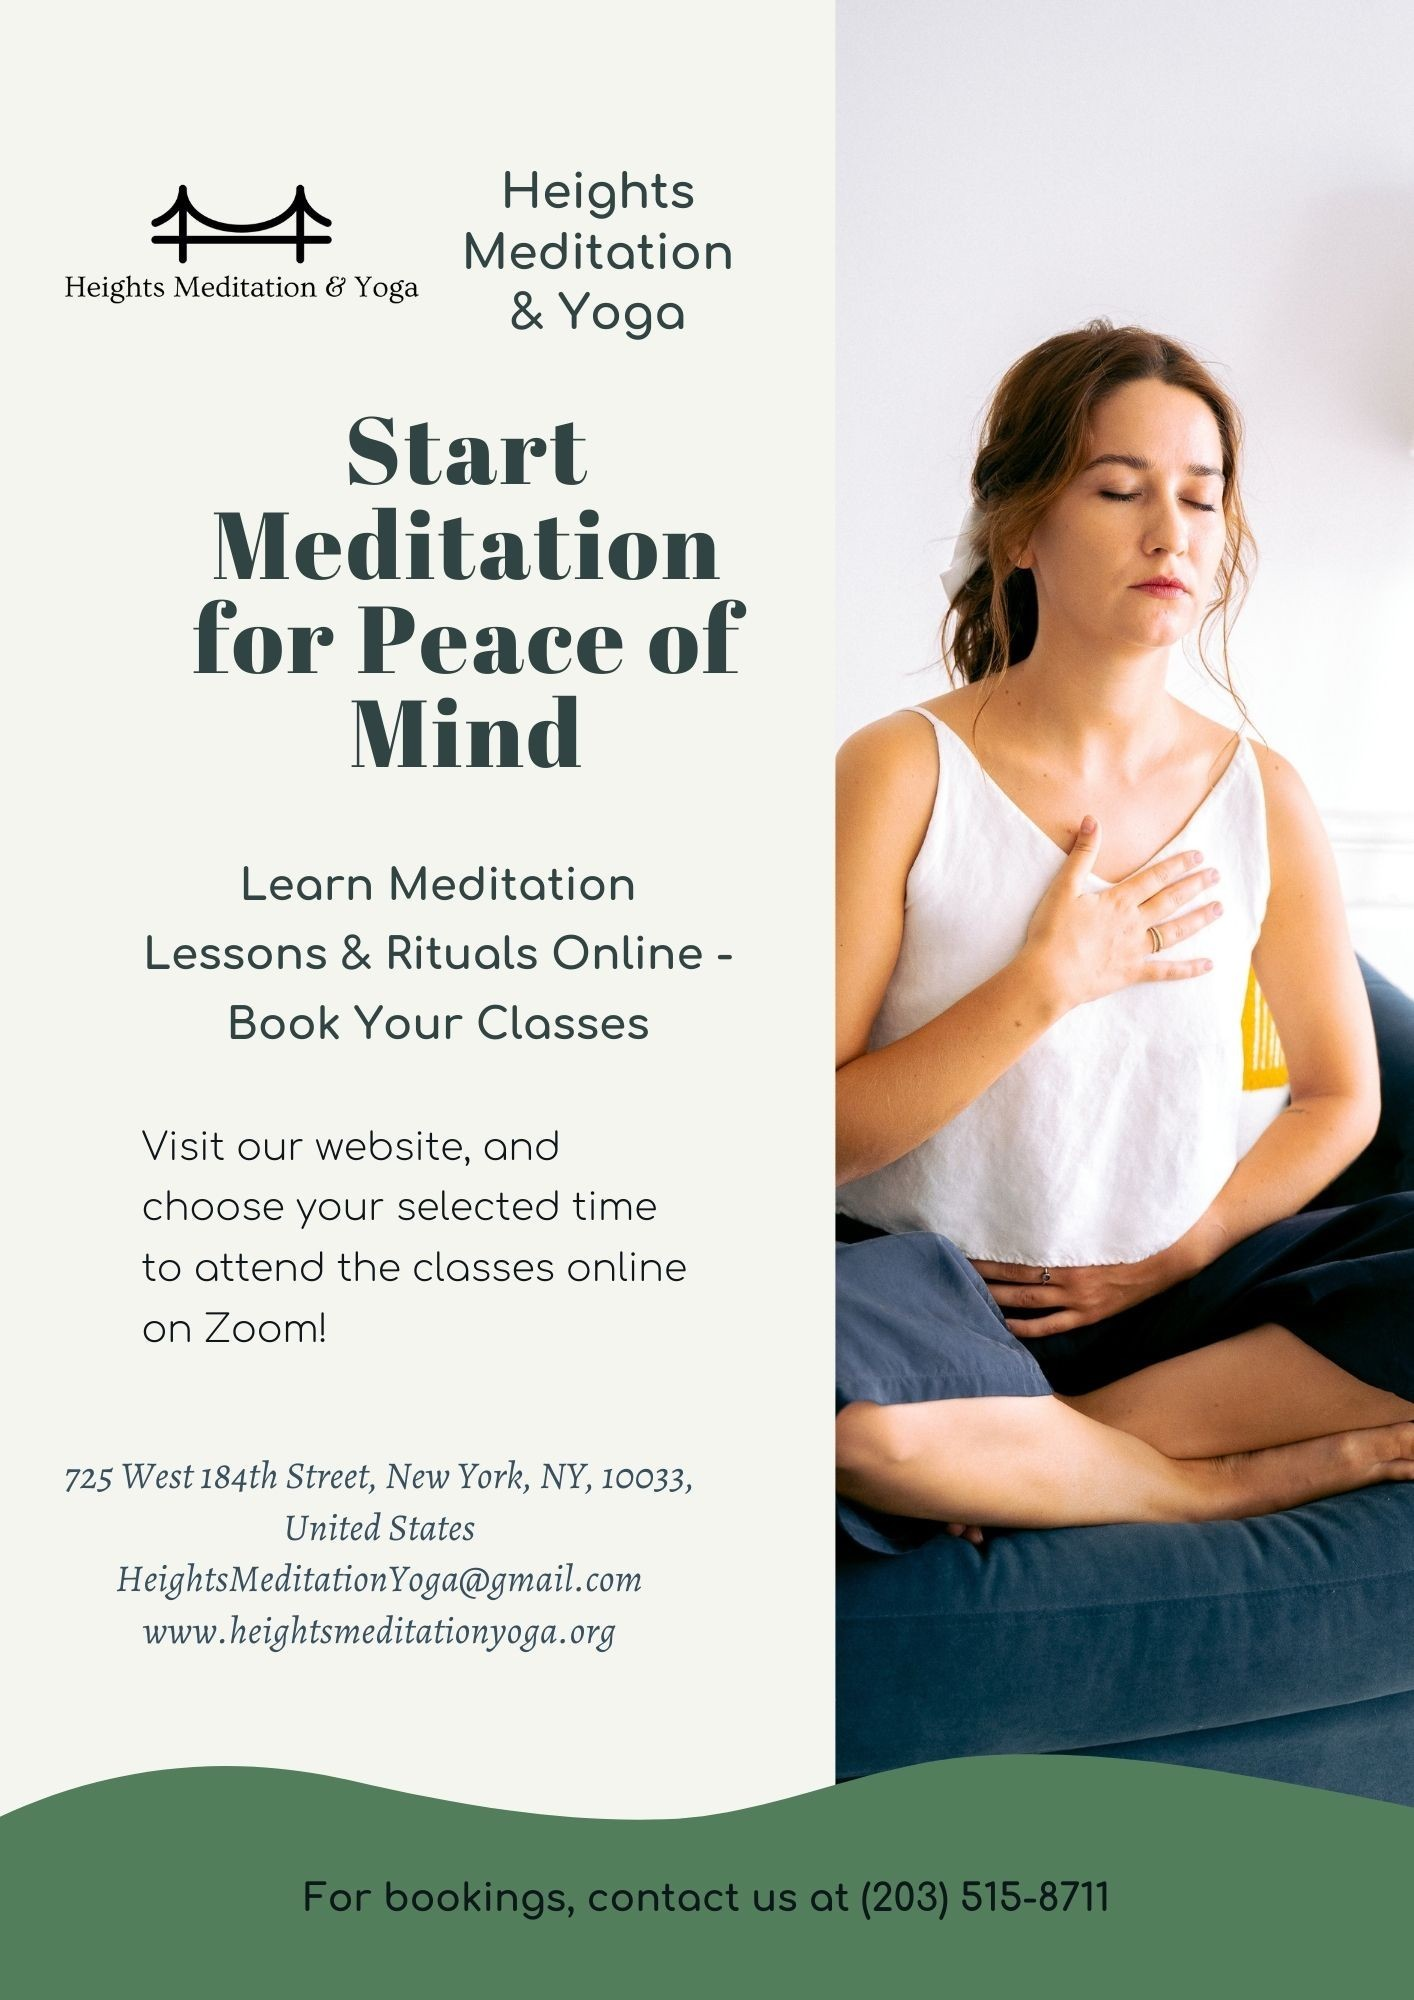 Benefits of Meditation for Peace of Mind You Should Know